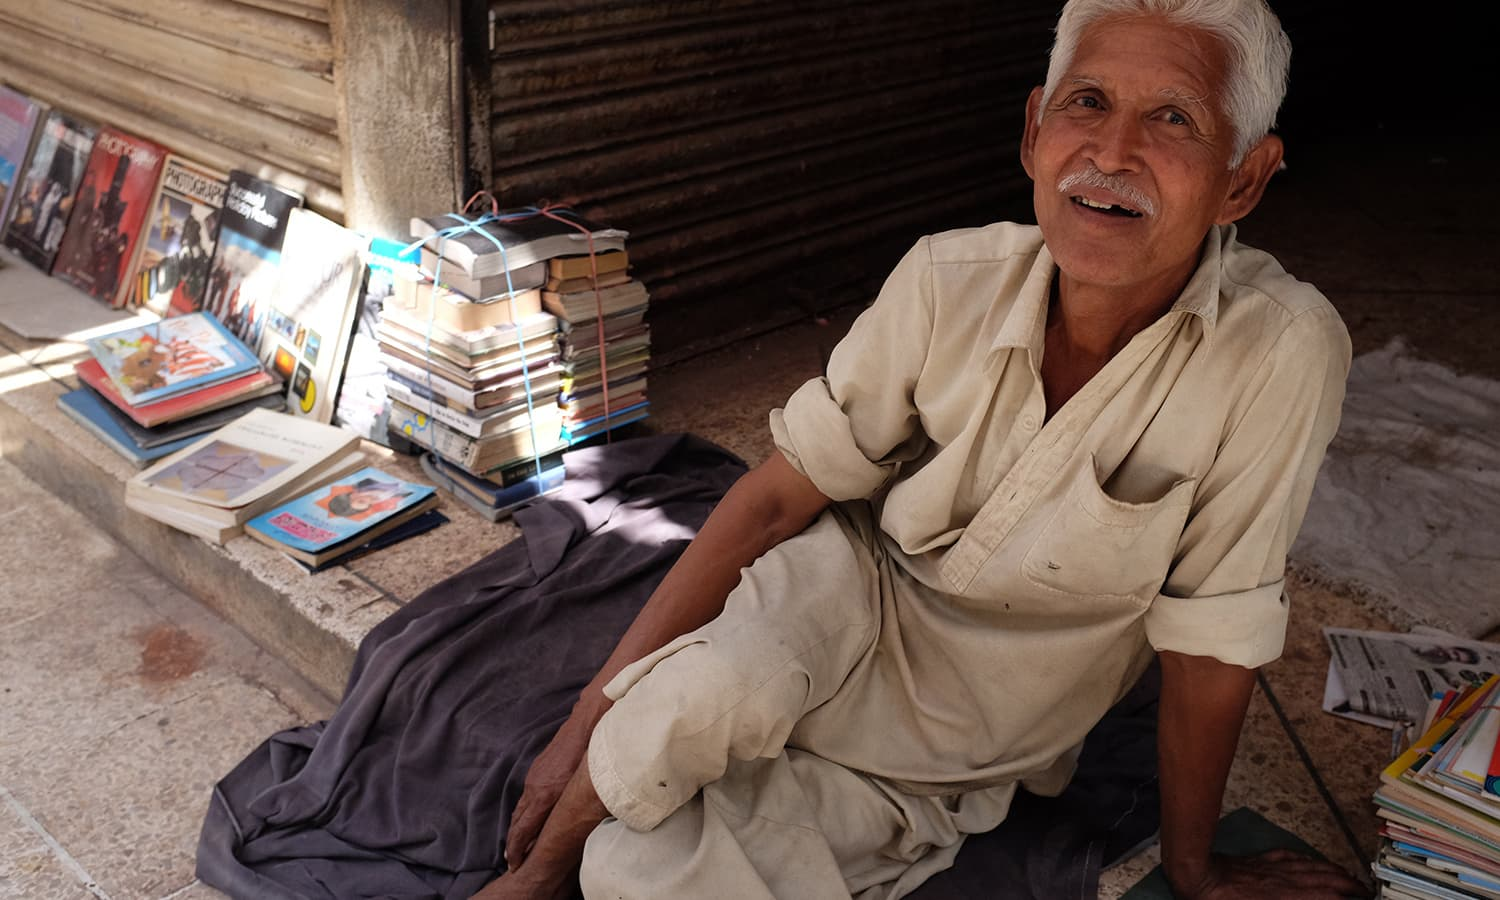 A bookseller at Regal chowk. — Photo by Farooq Soomro